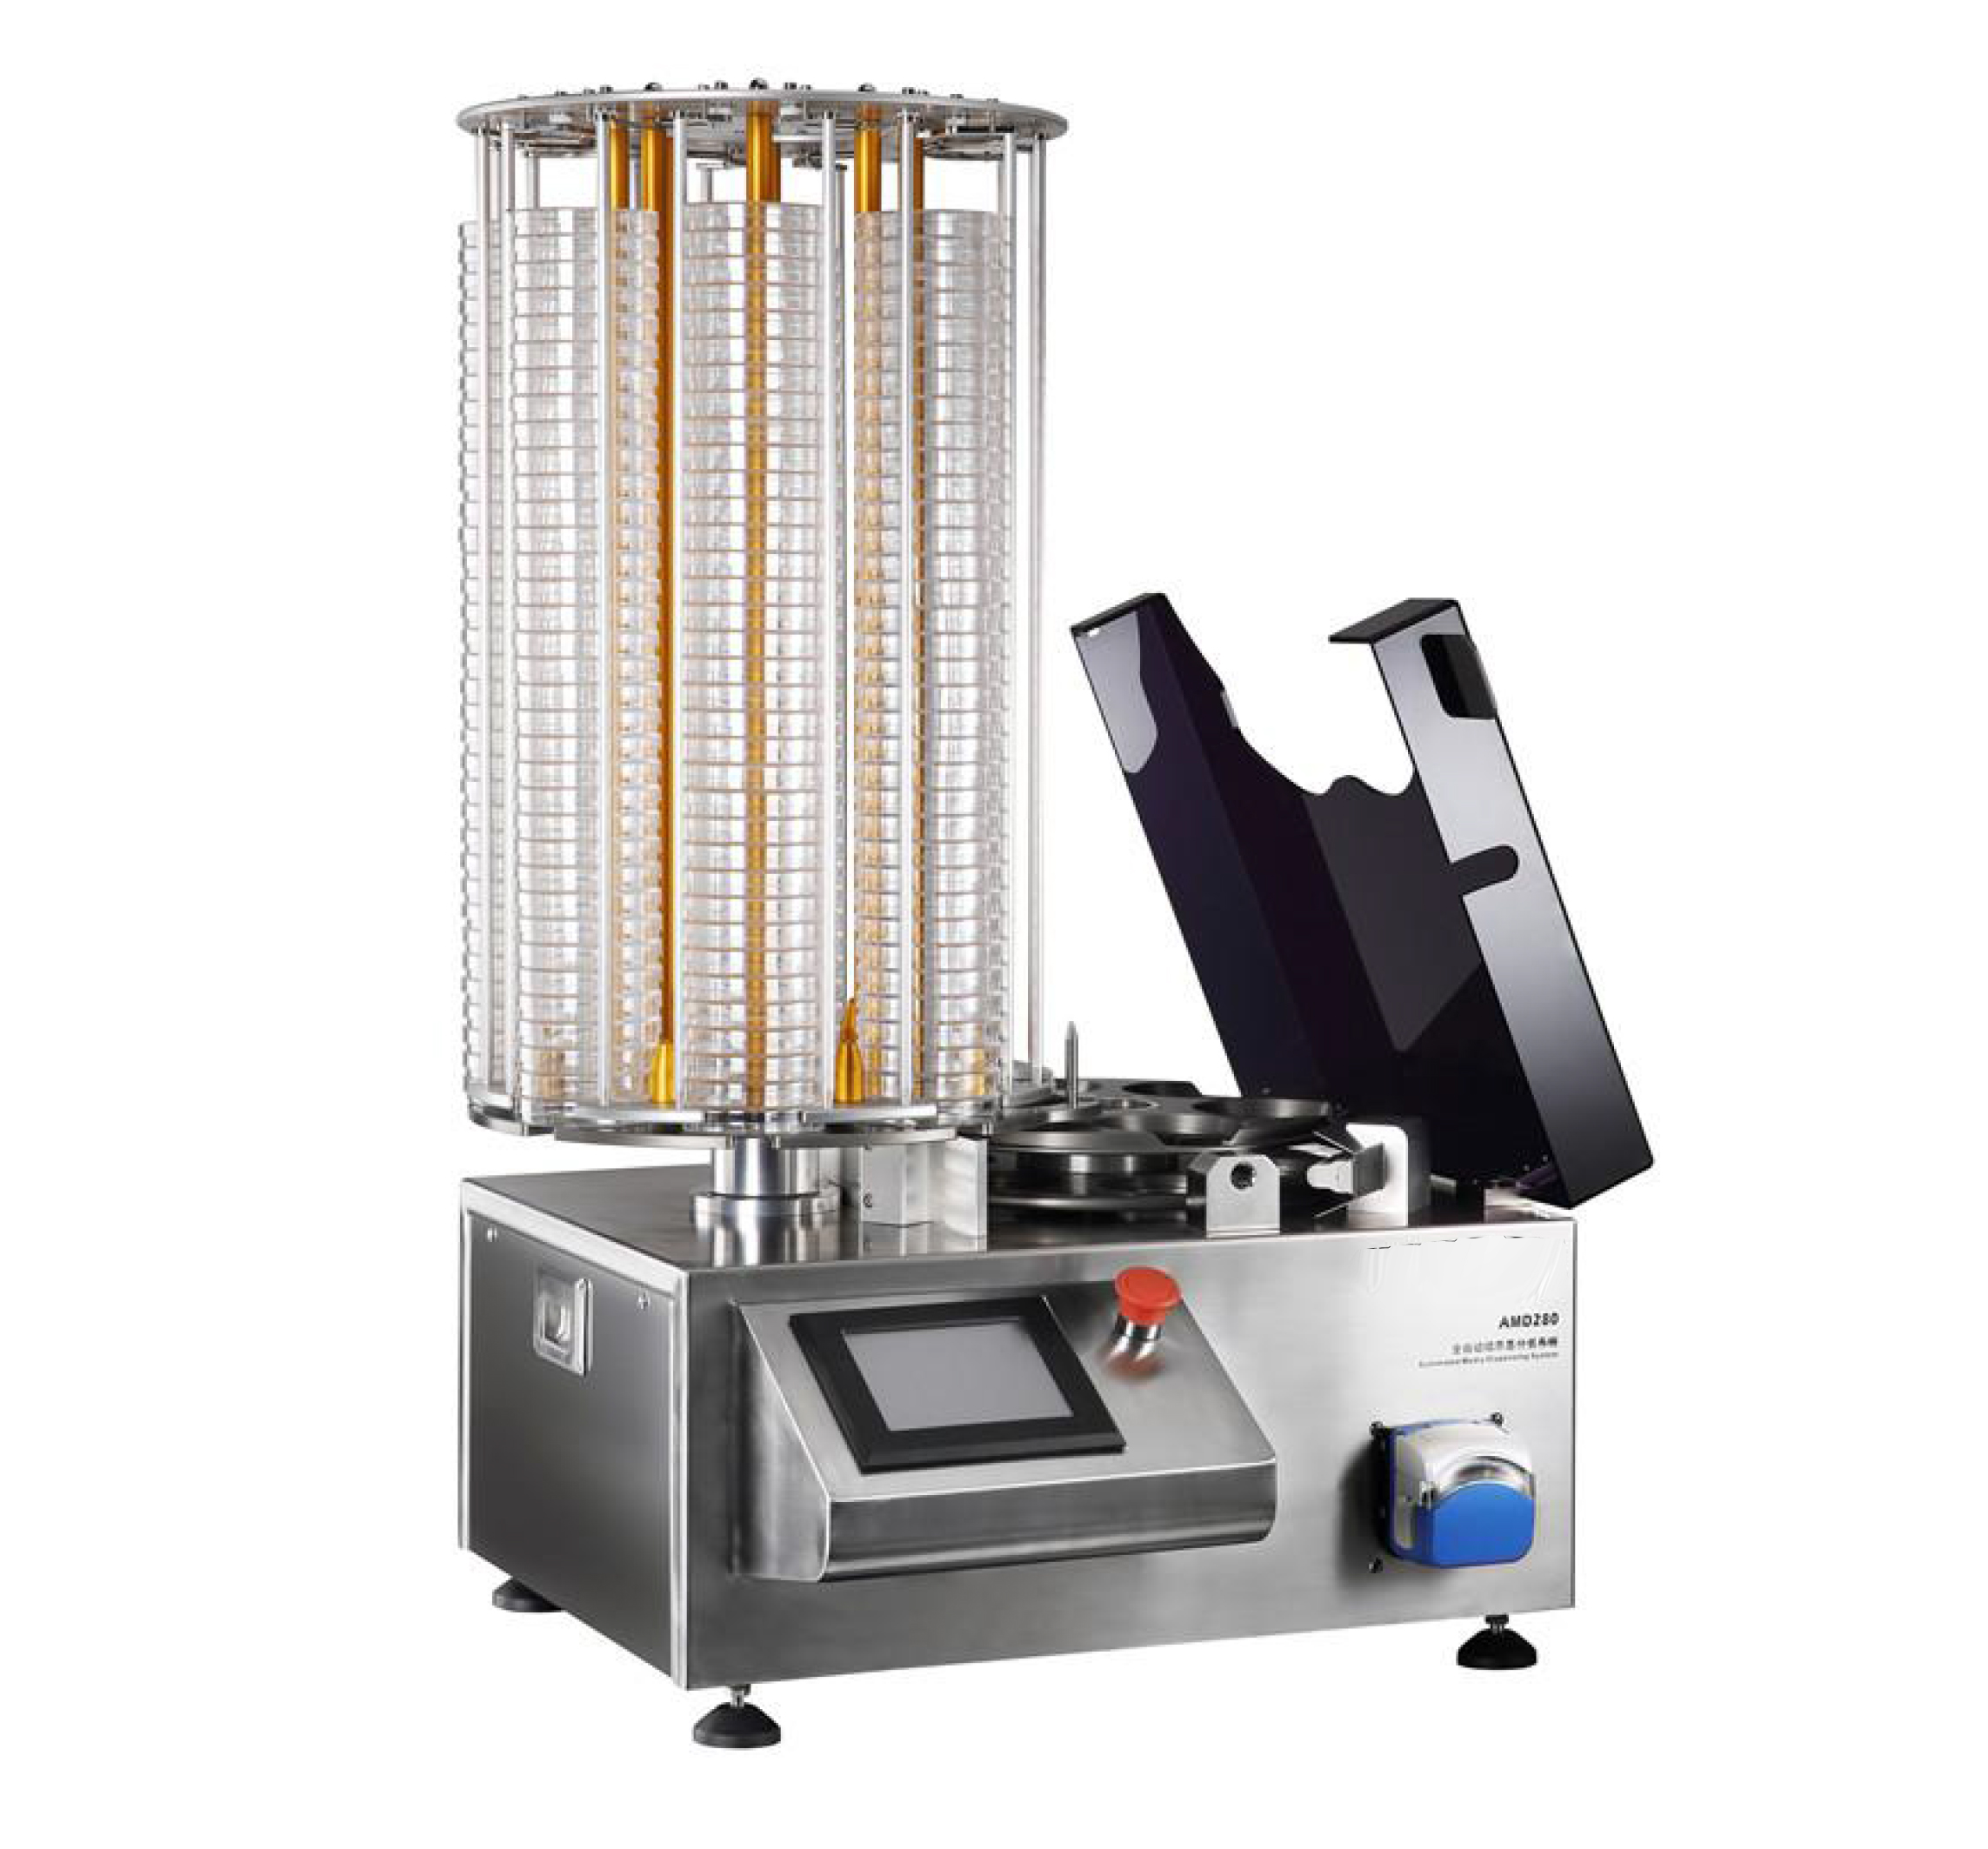 Automatic Dispensing Systems ~ Automated media dispensing systems